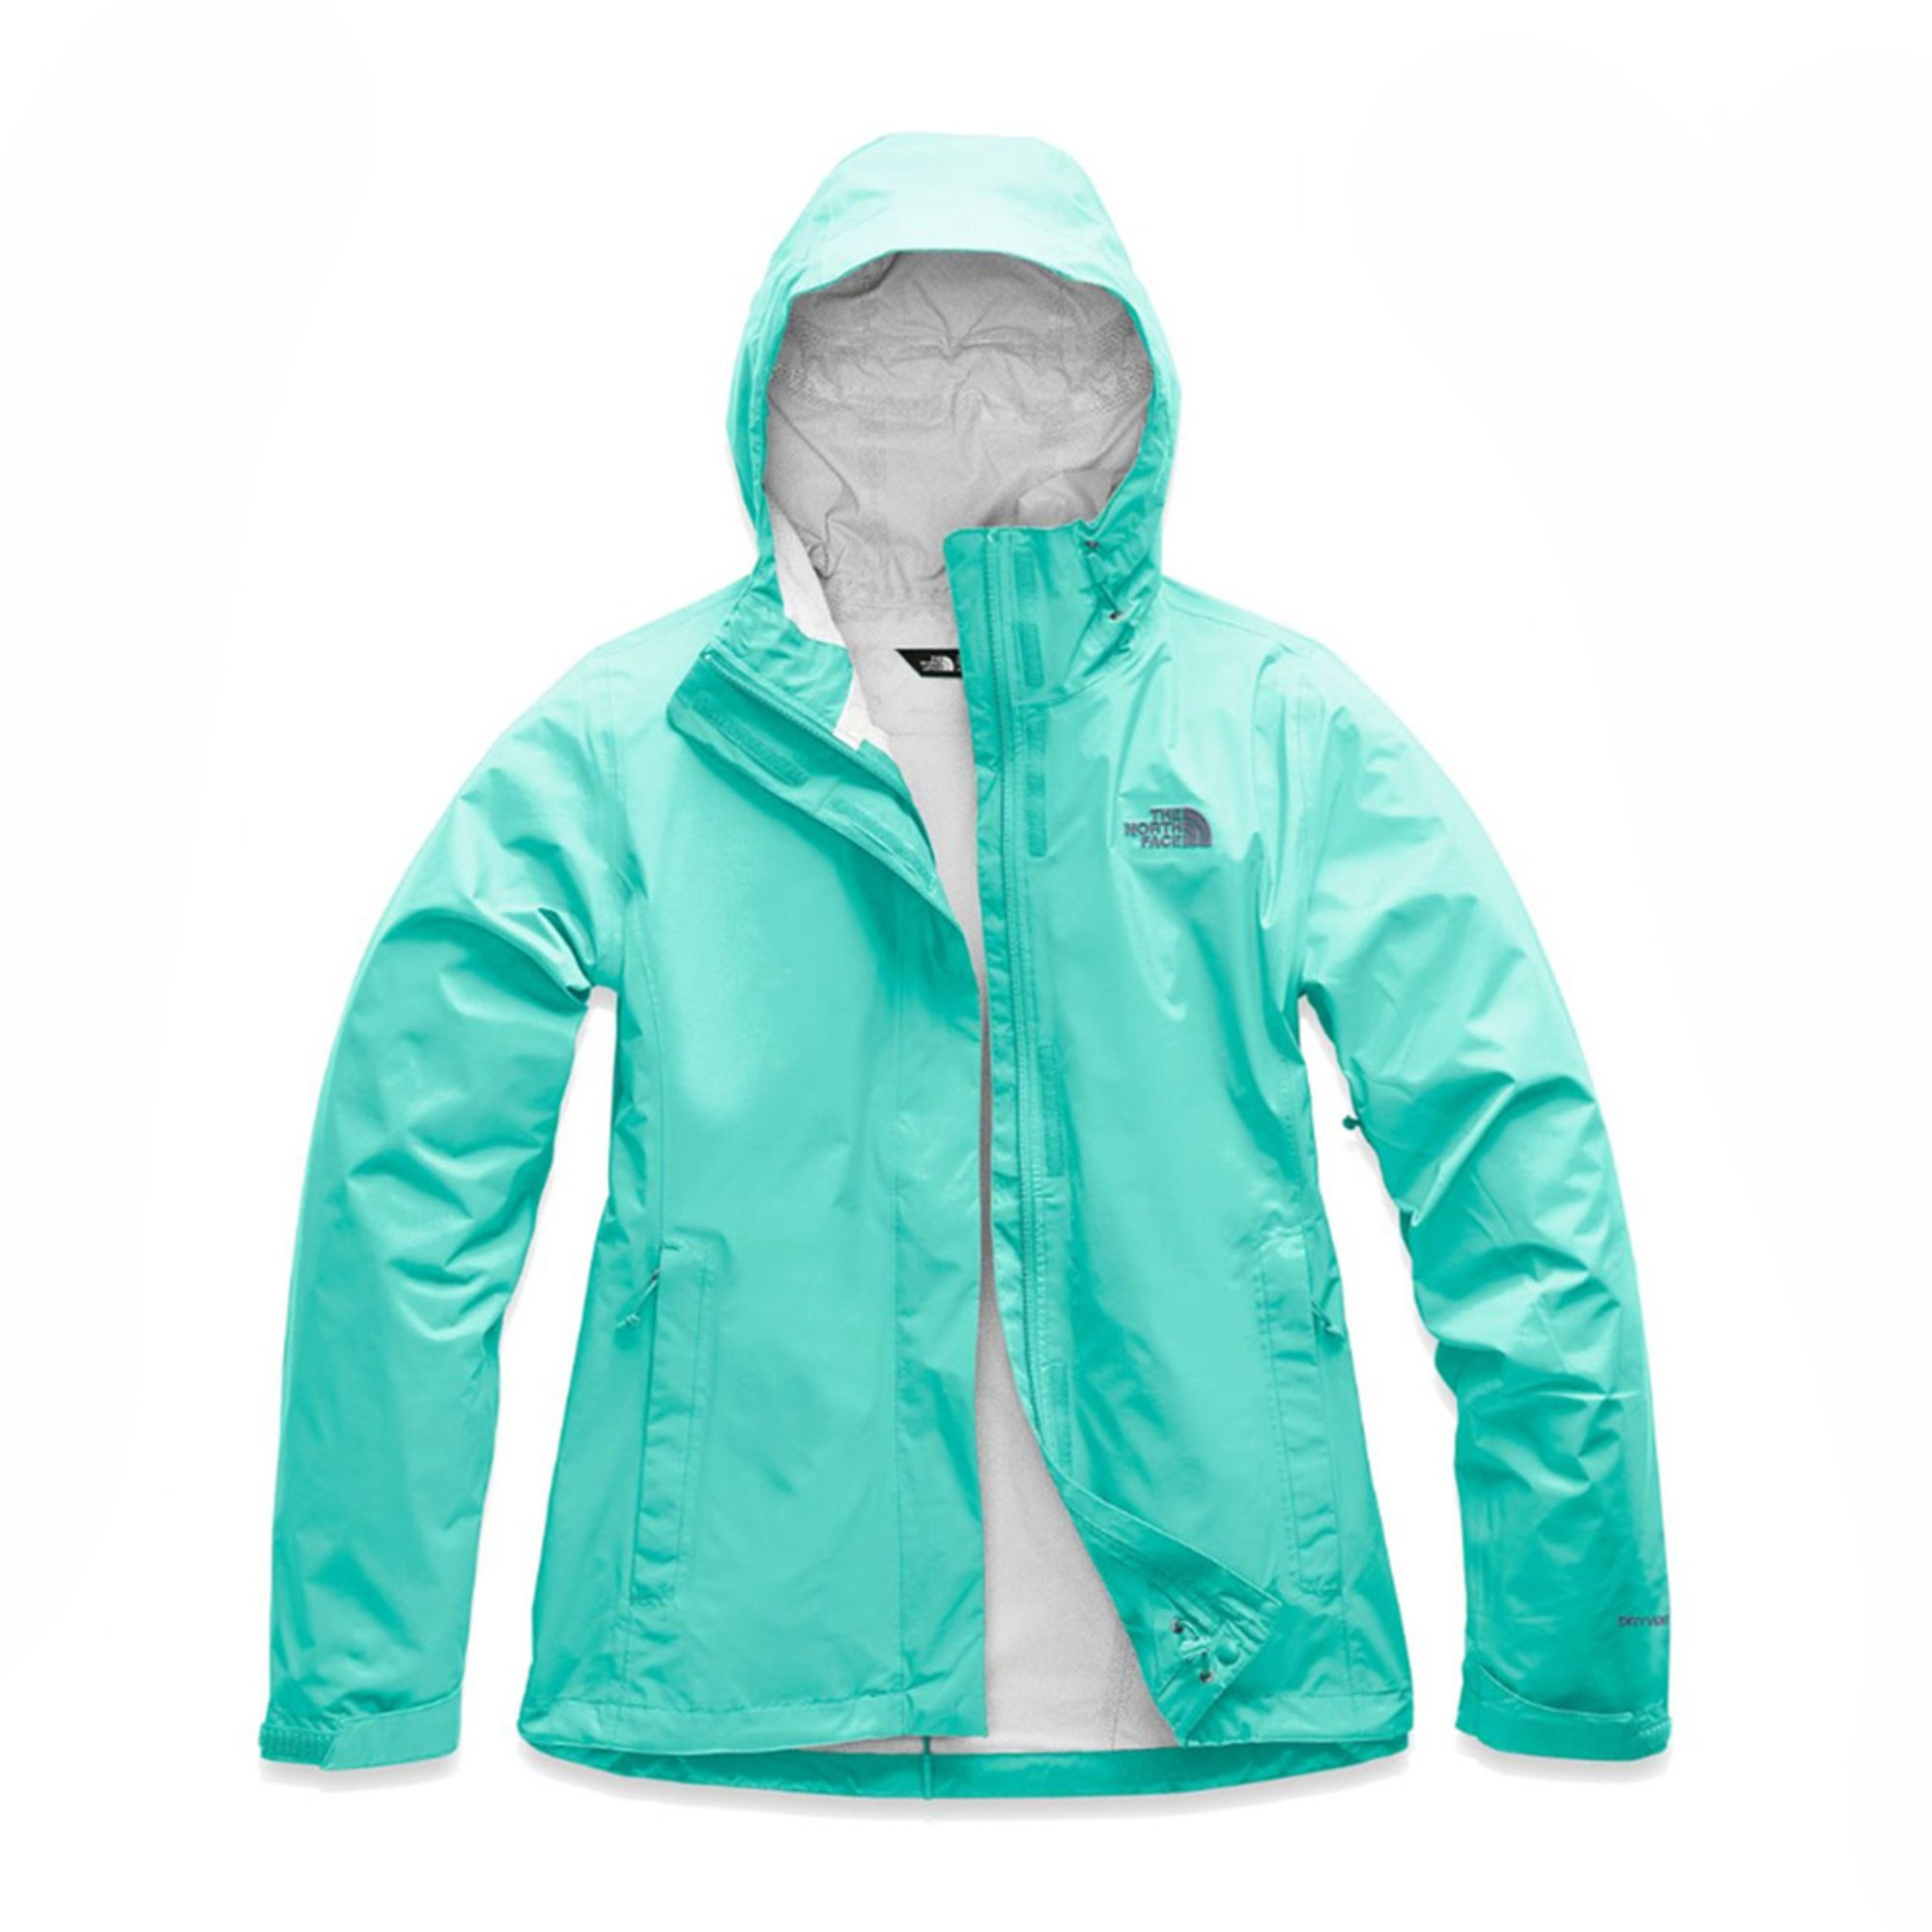 7bb661a4a The North Face Women's Venture 2 Jacket in Extended Sizes